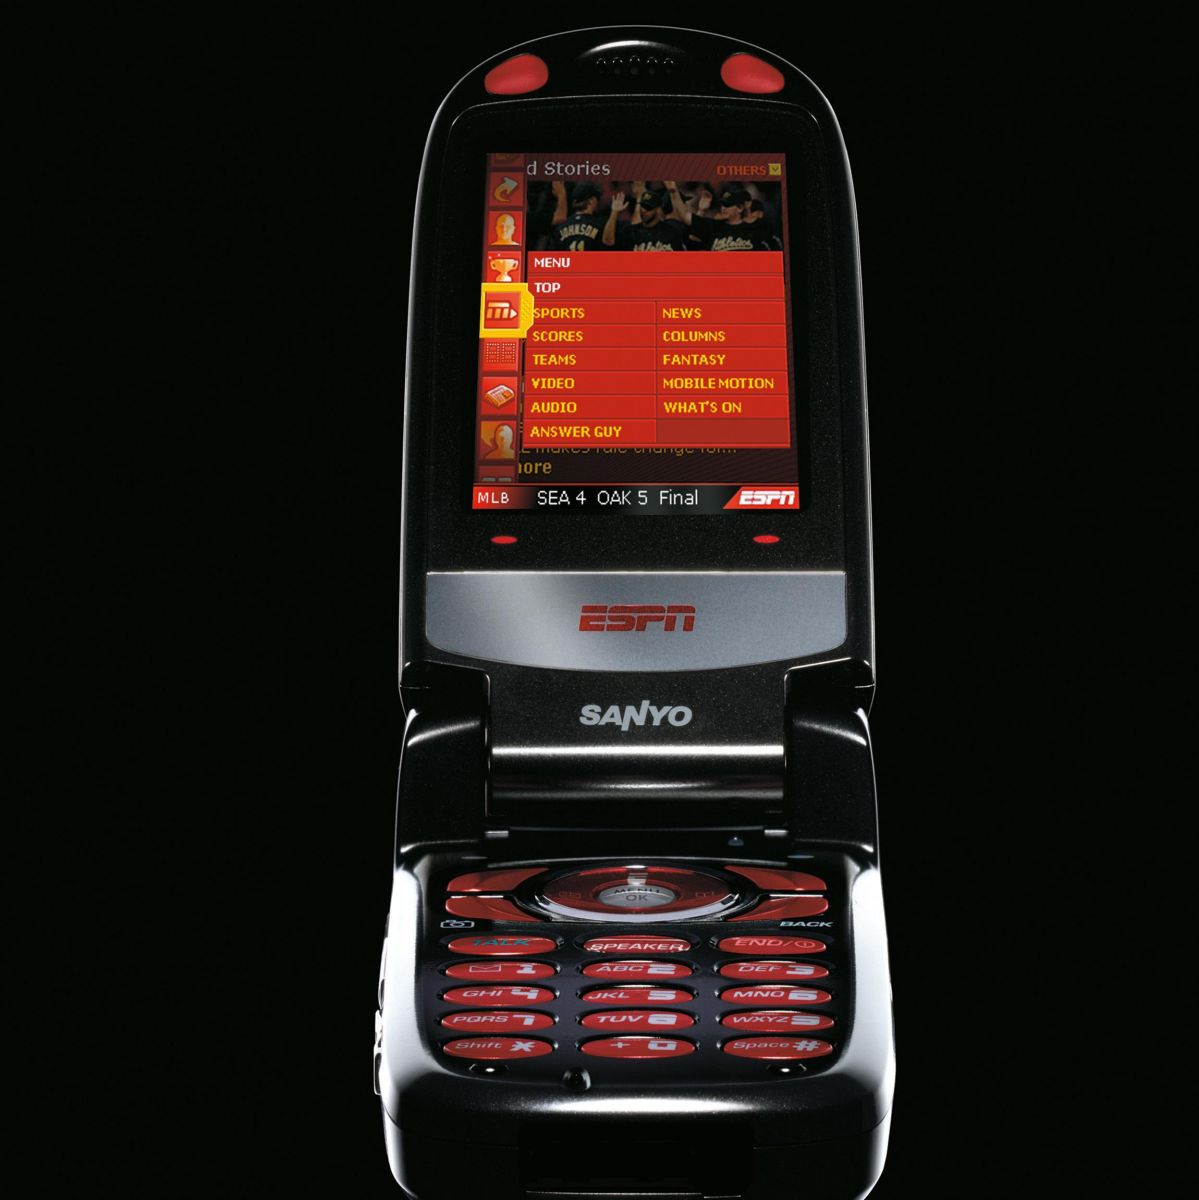 The ESPN phone from Sanyo